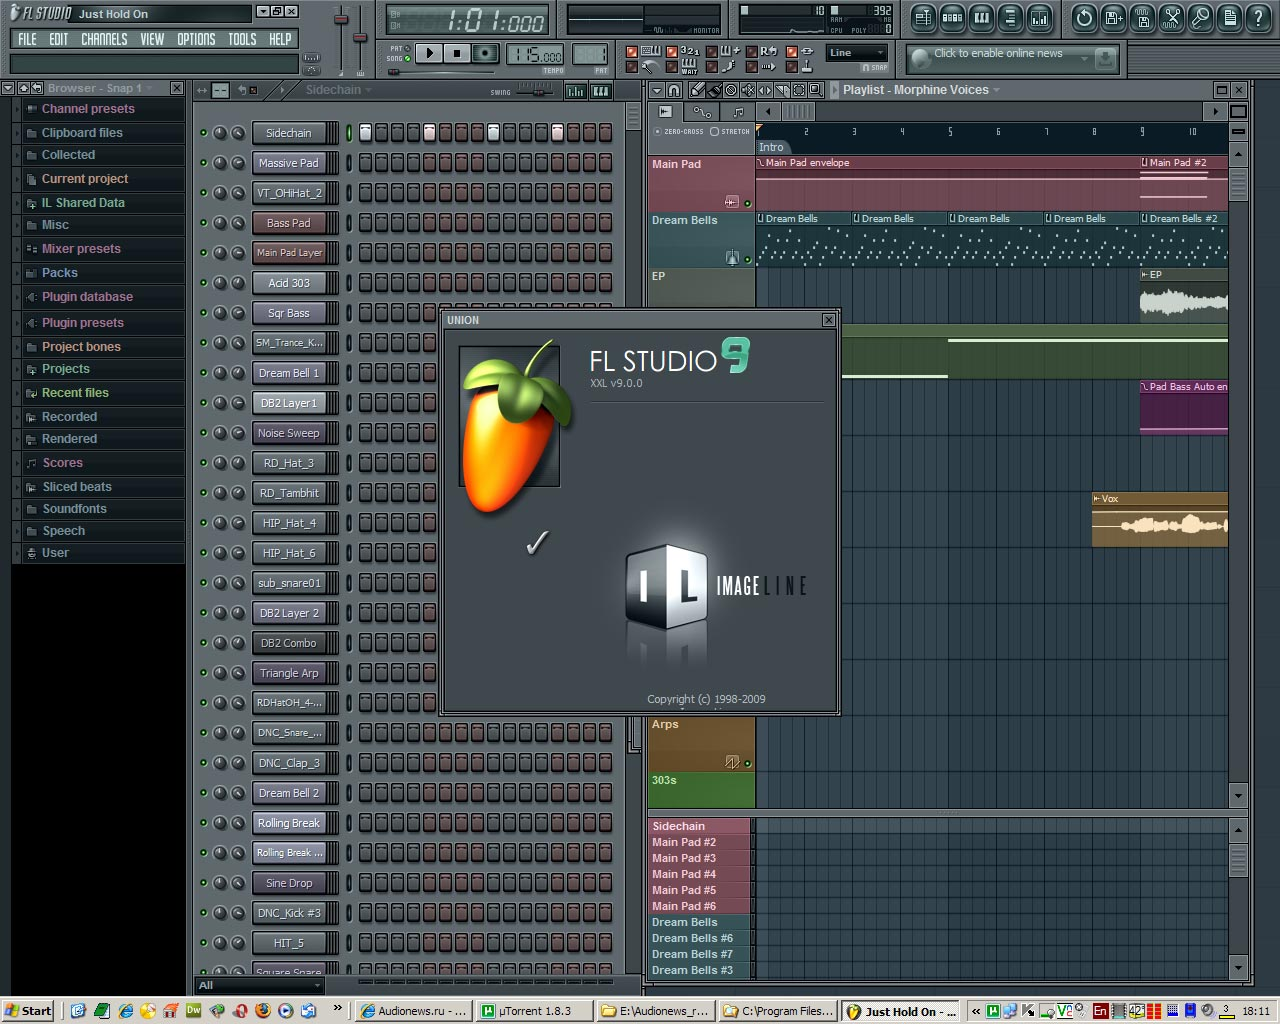 flstudio9